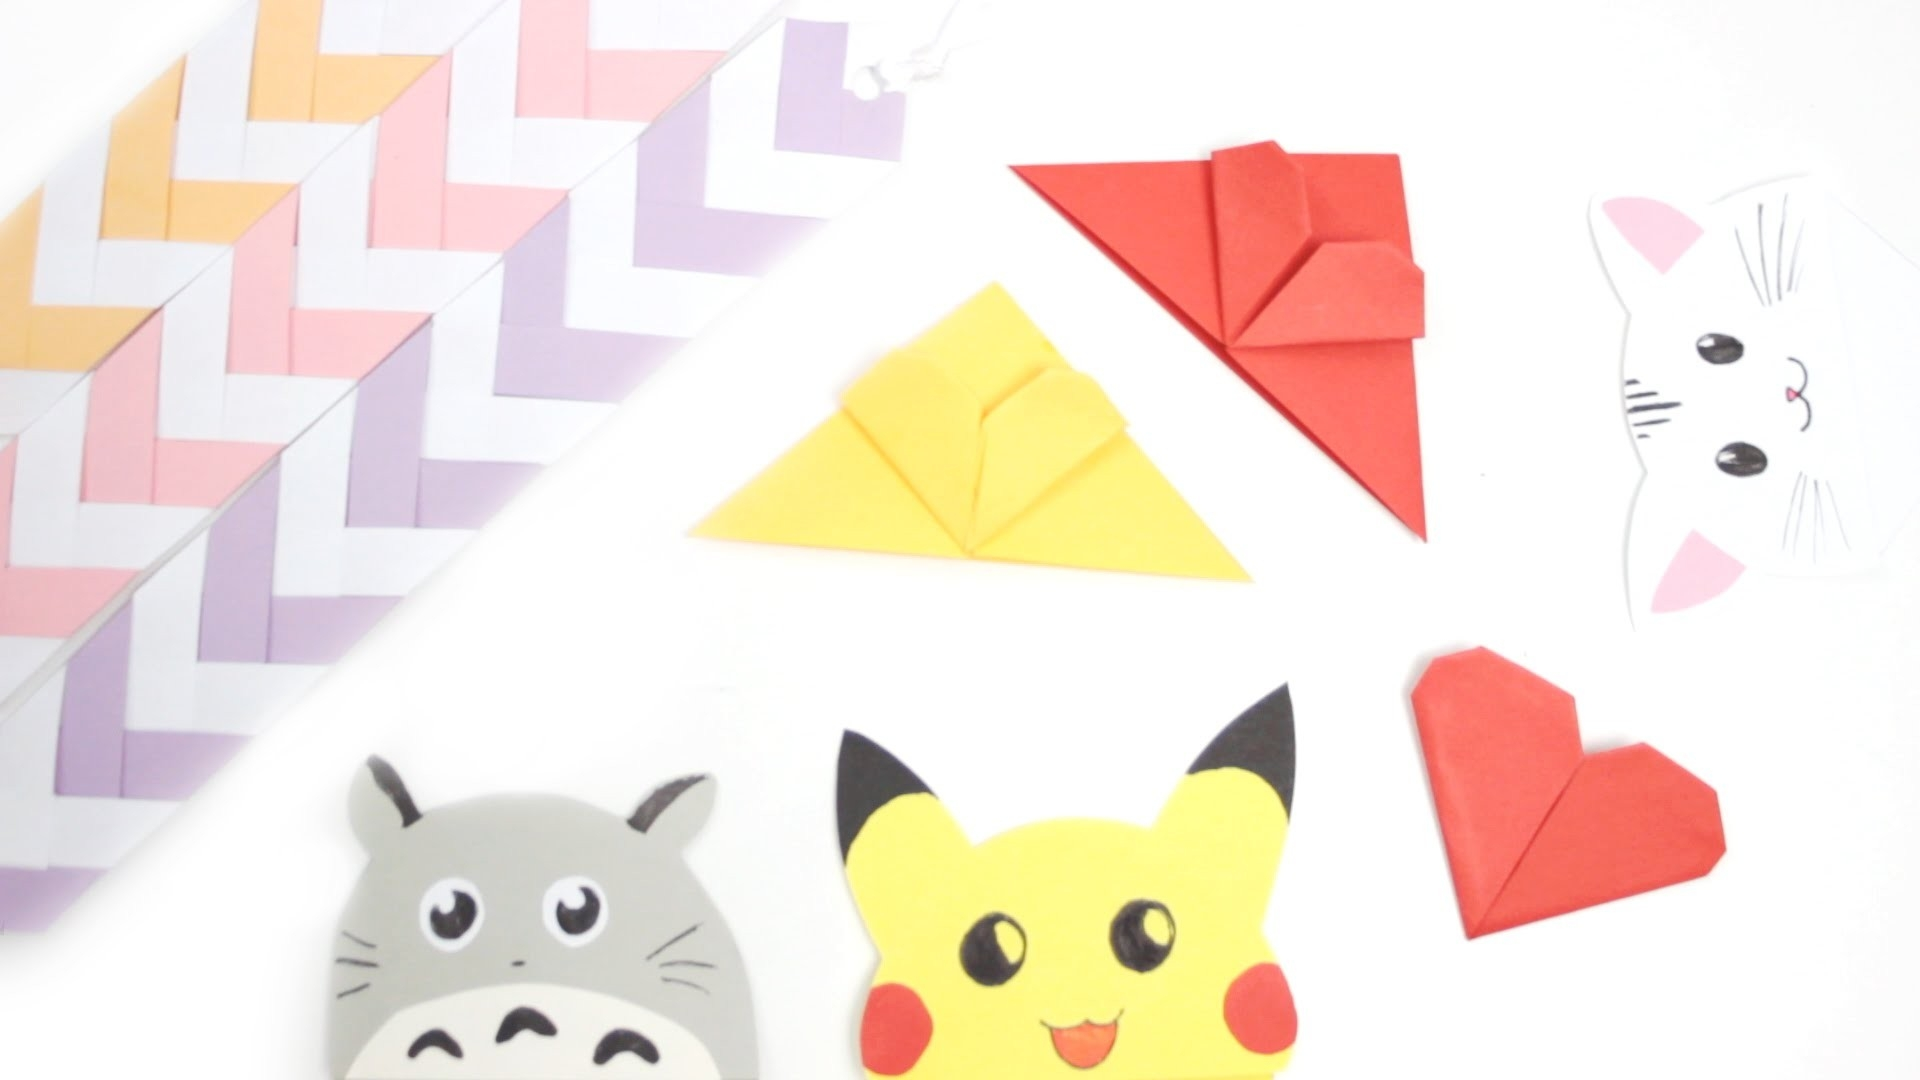 Diy: Cute & Easy Bookmark Ideas - Back To School - Youtube intended for Cute Bookmarks To Make 28010